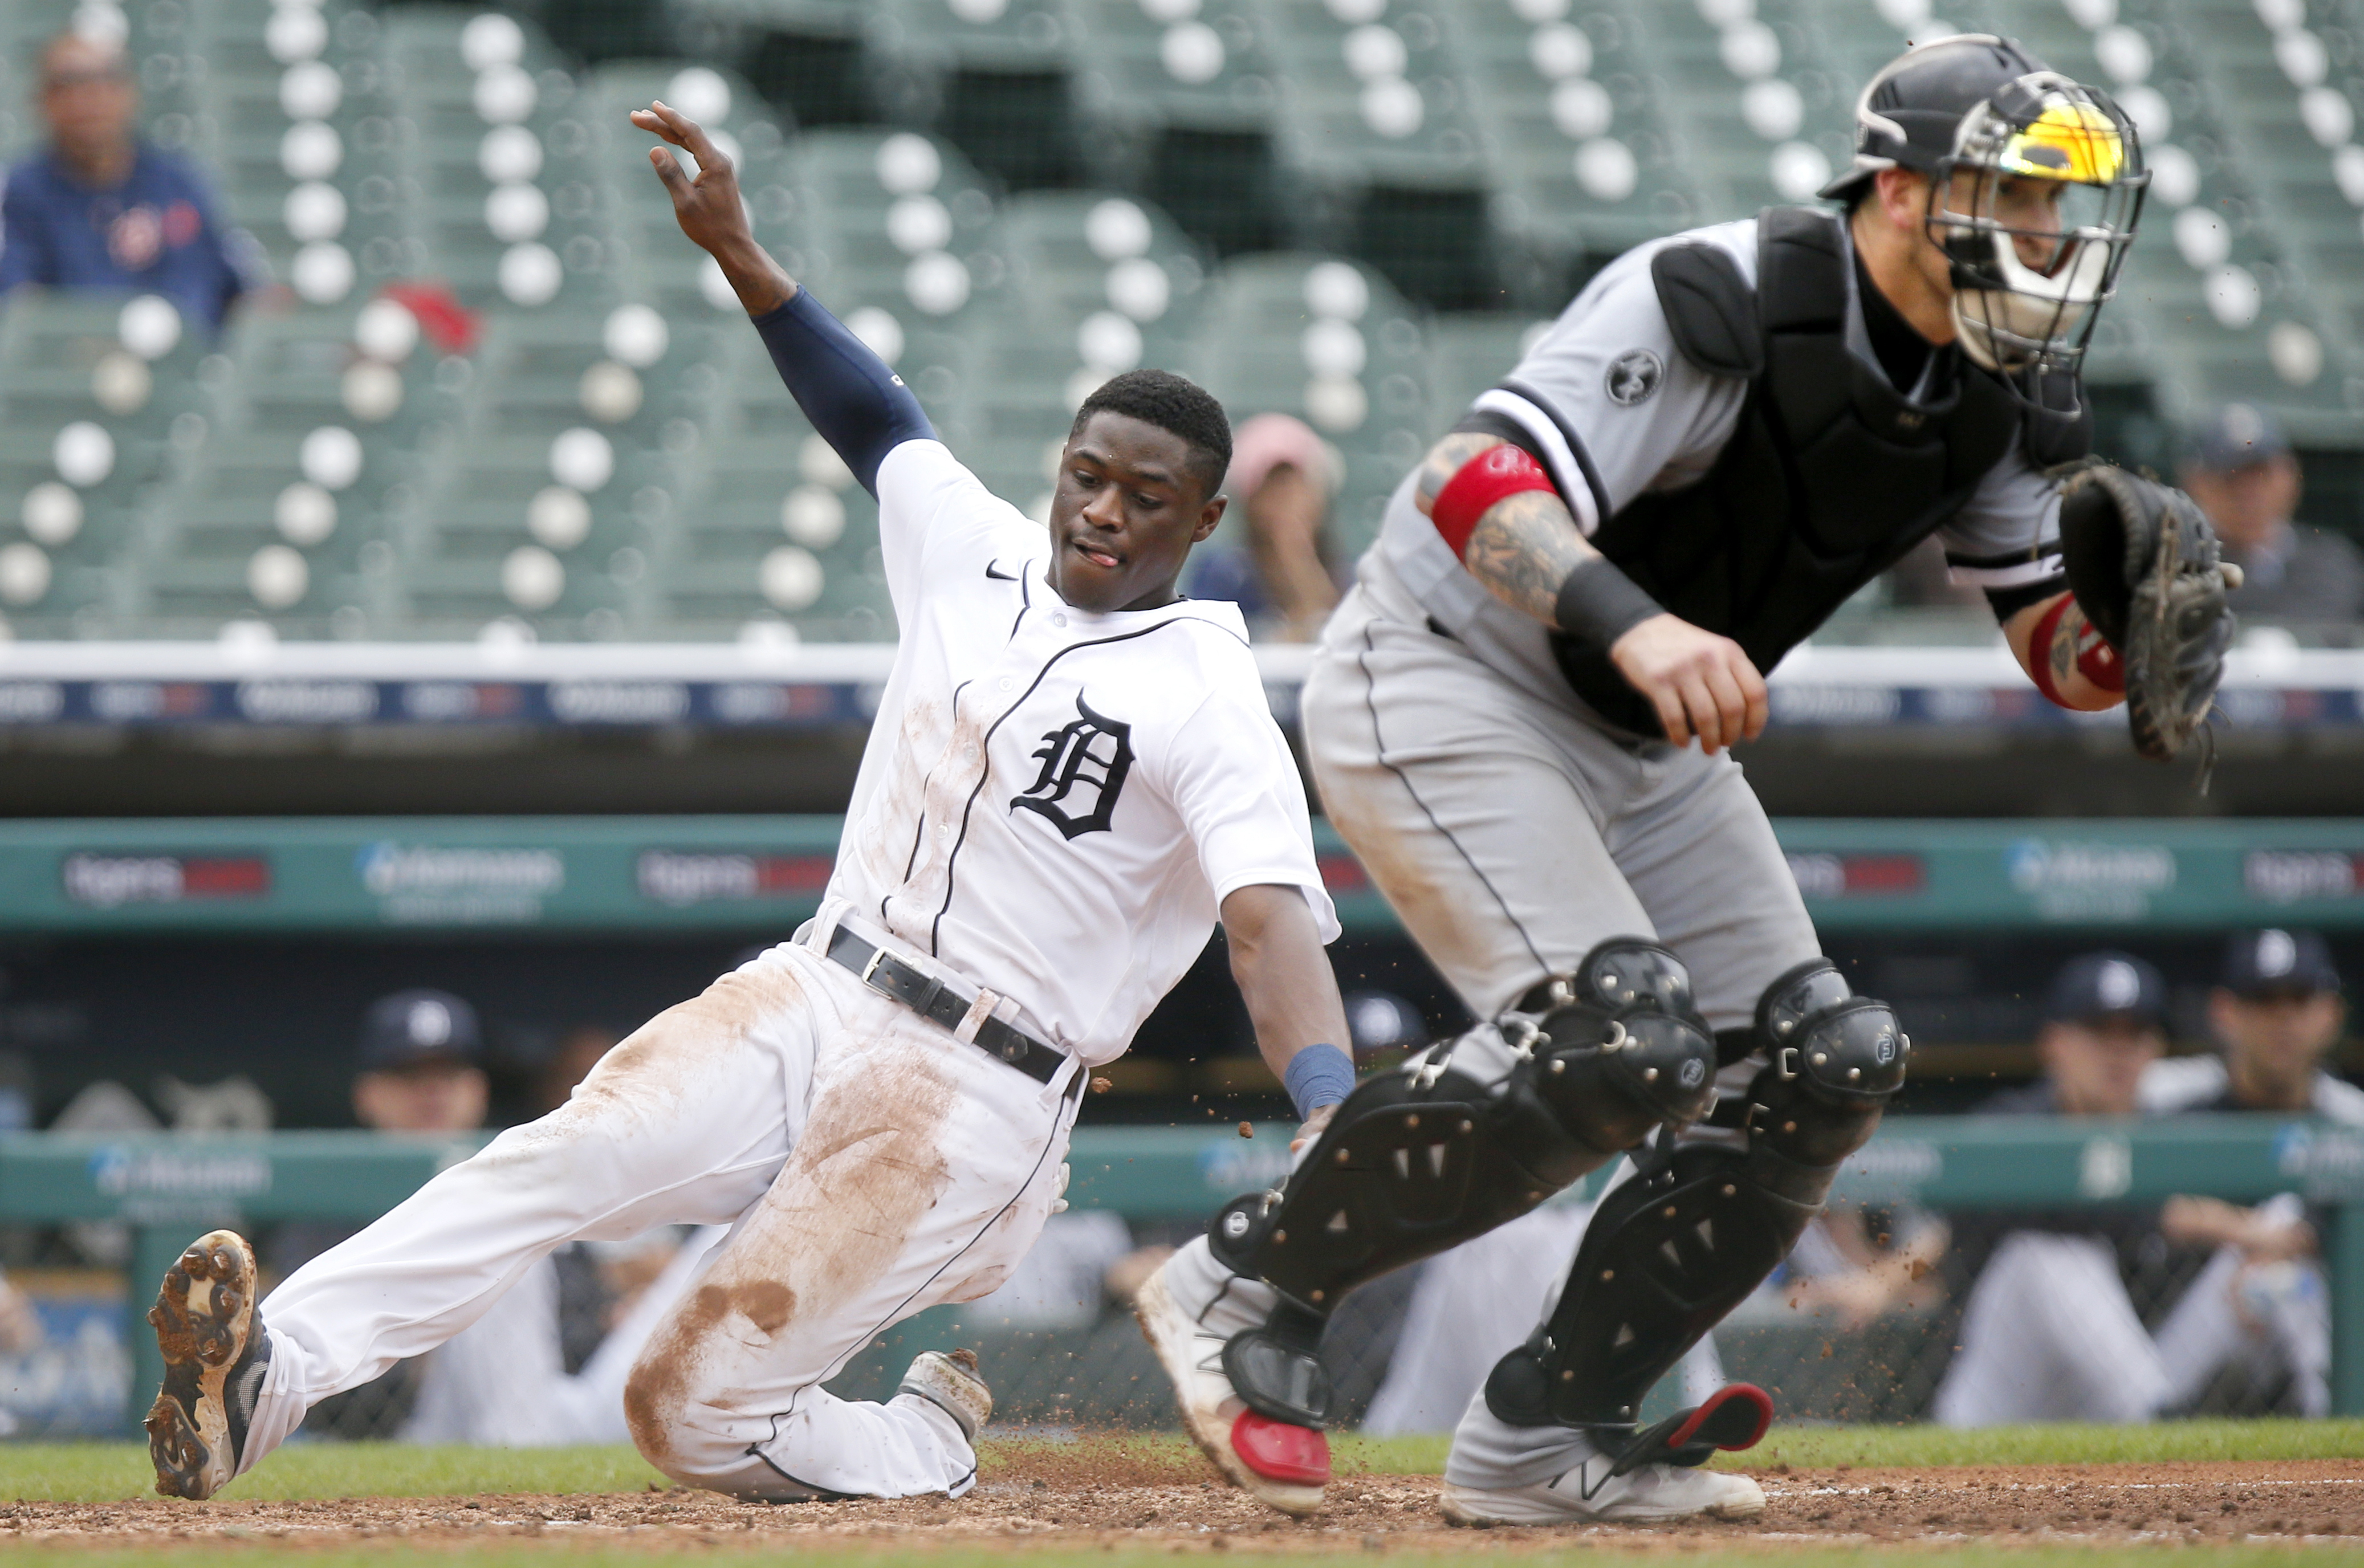 The Tigers' Daz Cameron scores behind White Sox catcher Yasmani Grandal during the fourth inning Tuesday.